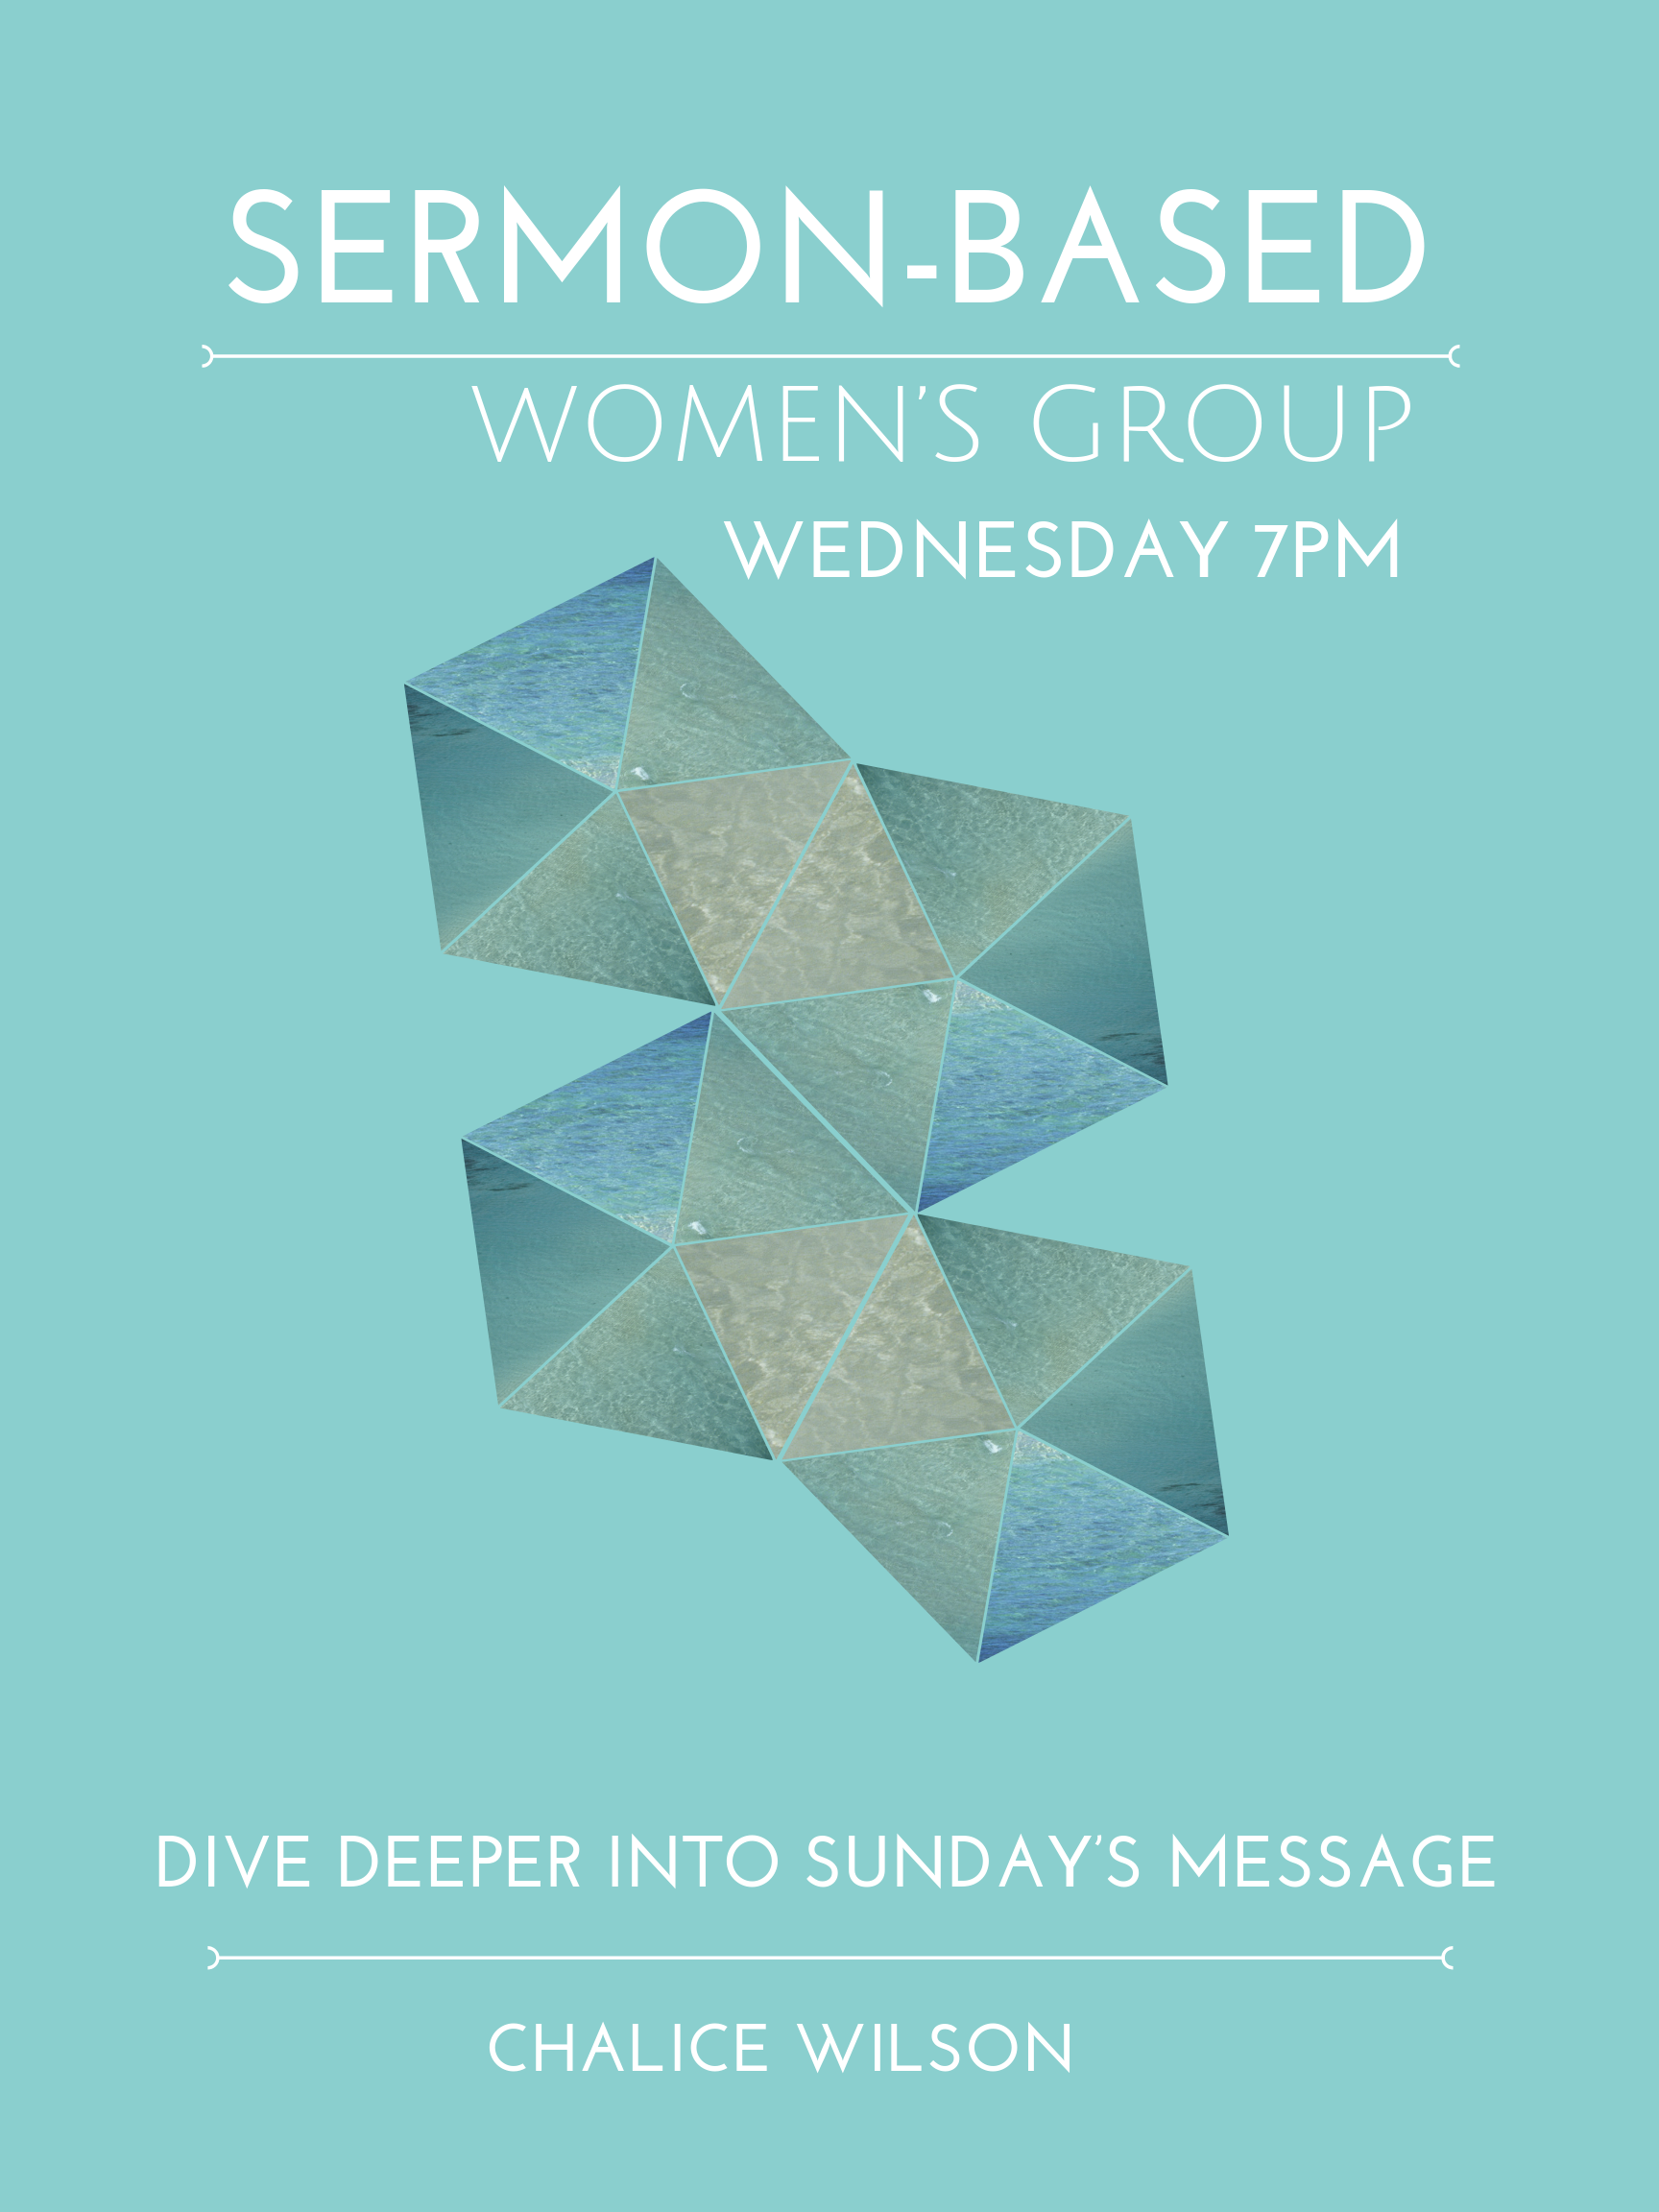 Women's Sermon-based Group - Join other women each week to dive deeper into Sunday's message. Learn what others are doing in their faith journey. Learn best practices from those in different seasons of life. This group meets each Wednesday 7:00PM HOME GroupChalice Wilson